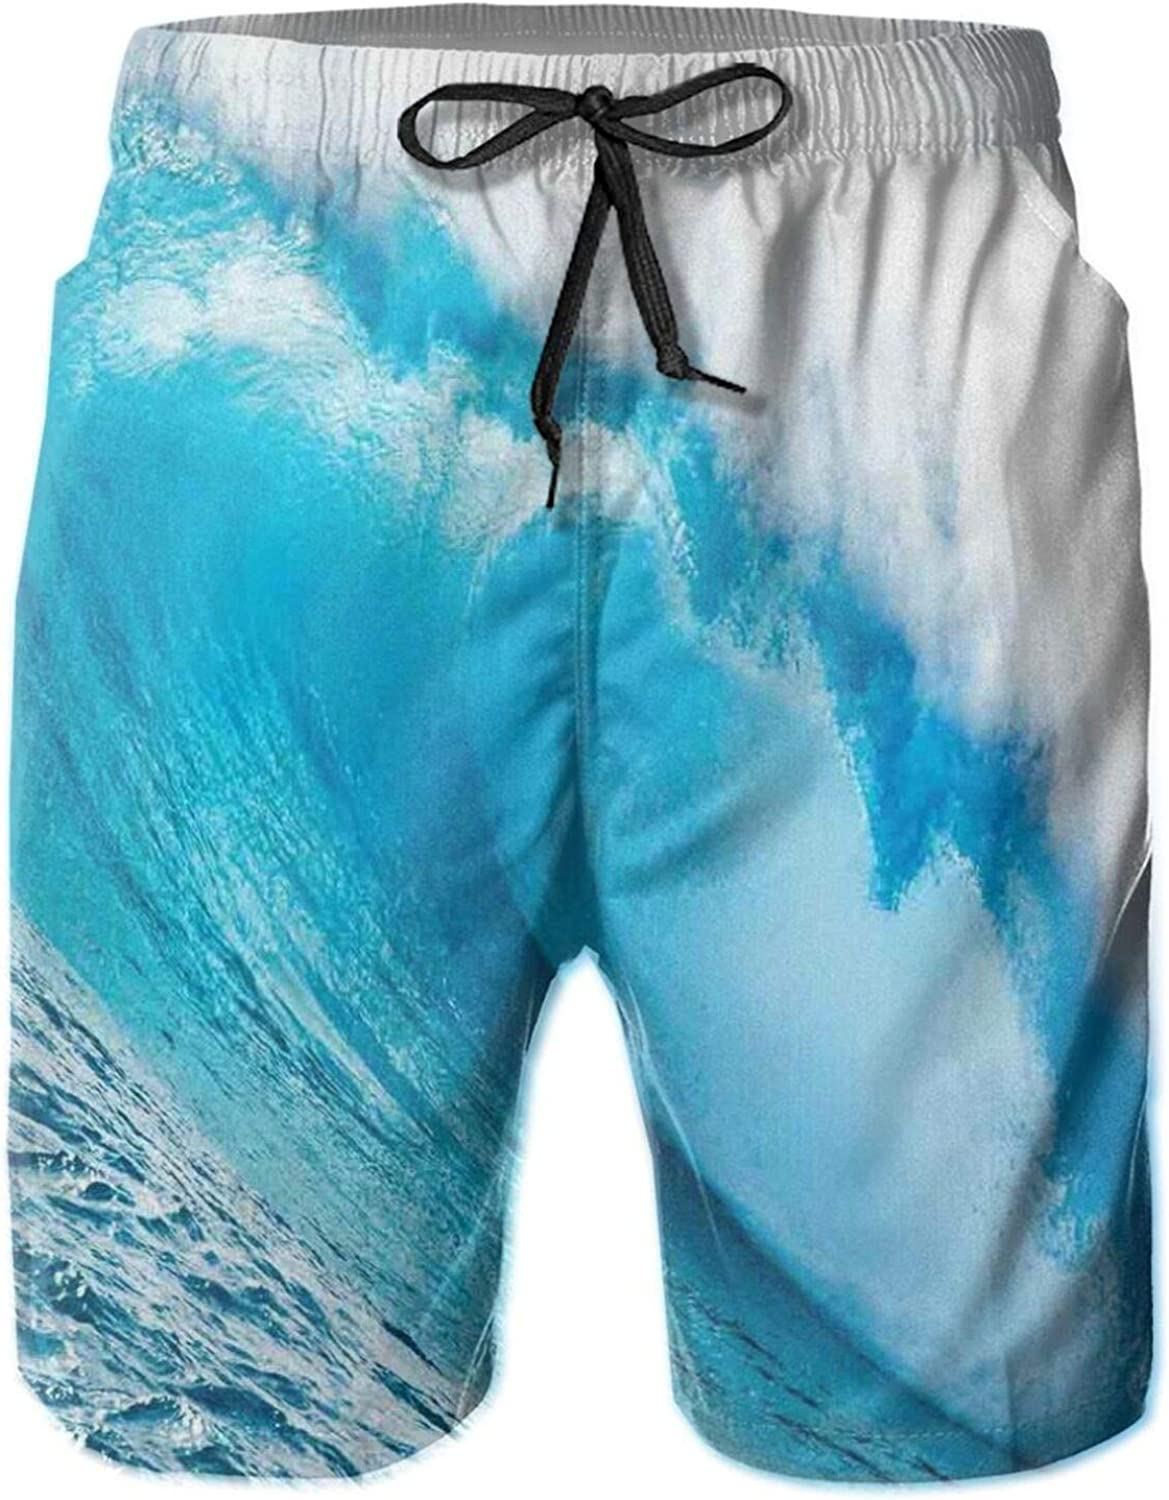 Surfing Water Tube Appeares After Forceful Giant Wave Curls Itself On Sea Mens Swim Shorts Casual Workout Short Pants Drawstring Beach Shorts,XXL